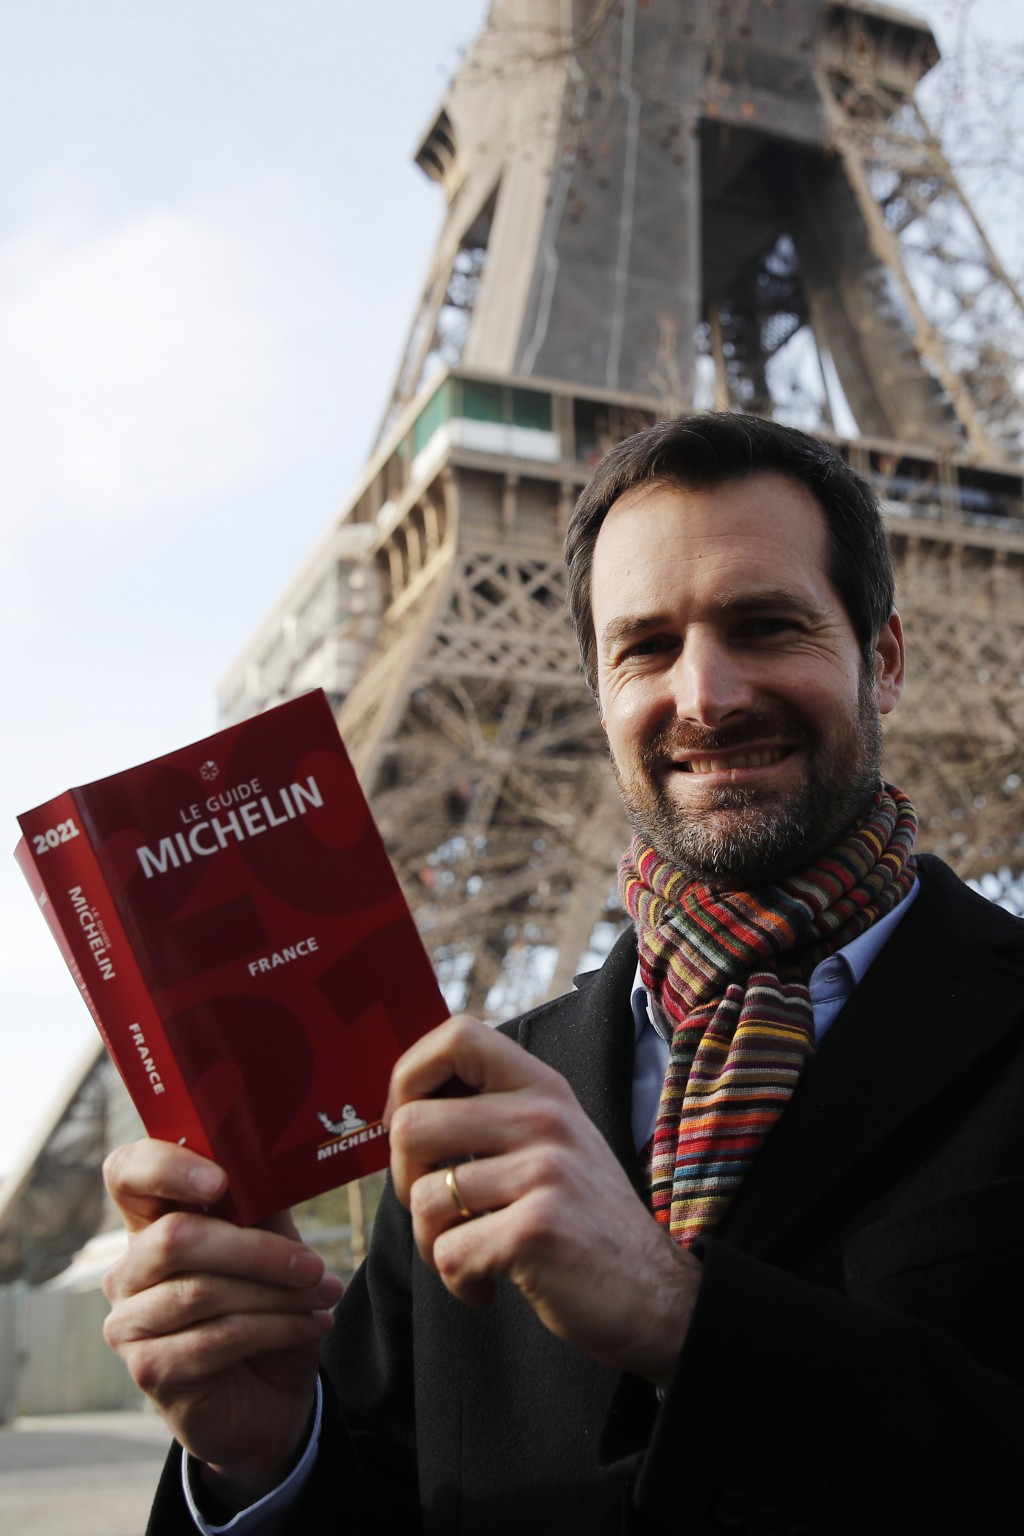 Gwendal Poullennec, head of Le Guide Michelin, poses with the 2021 edition outside the Eiffel Tower, Monday, Jan. 18, 2021 in Paris. Michelin will lat...